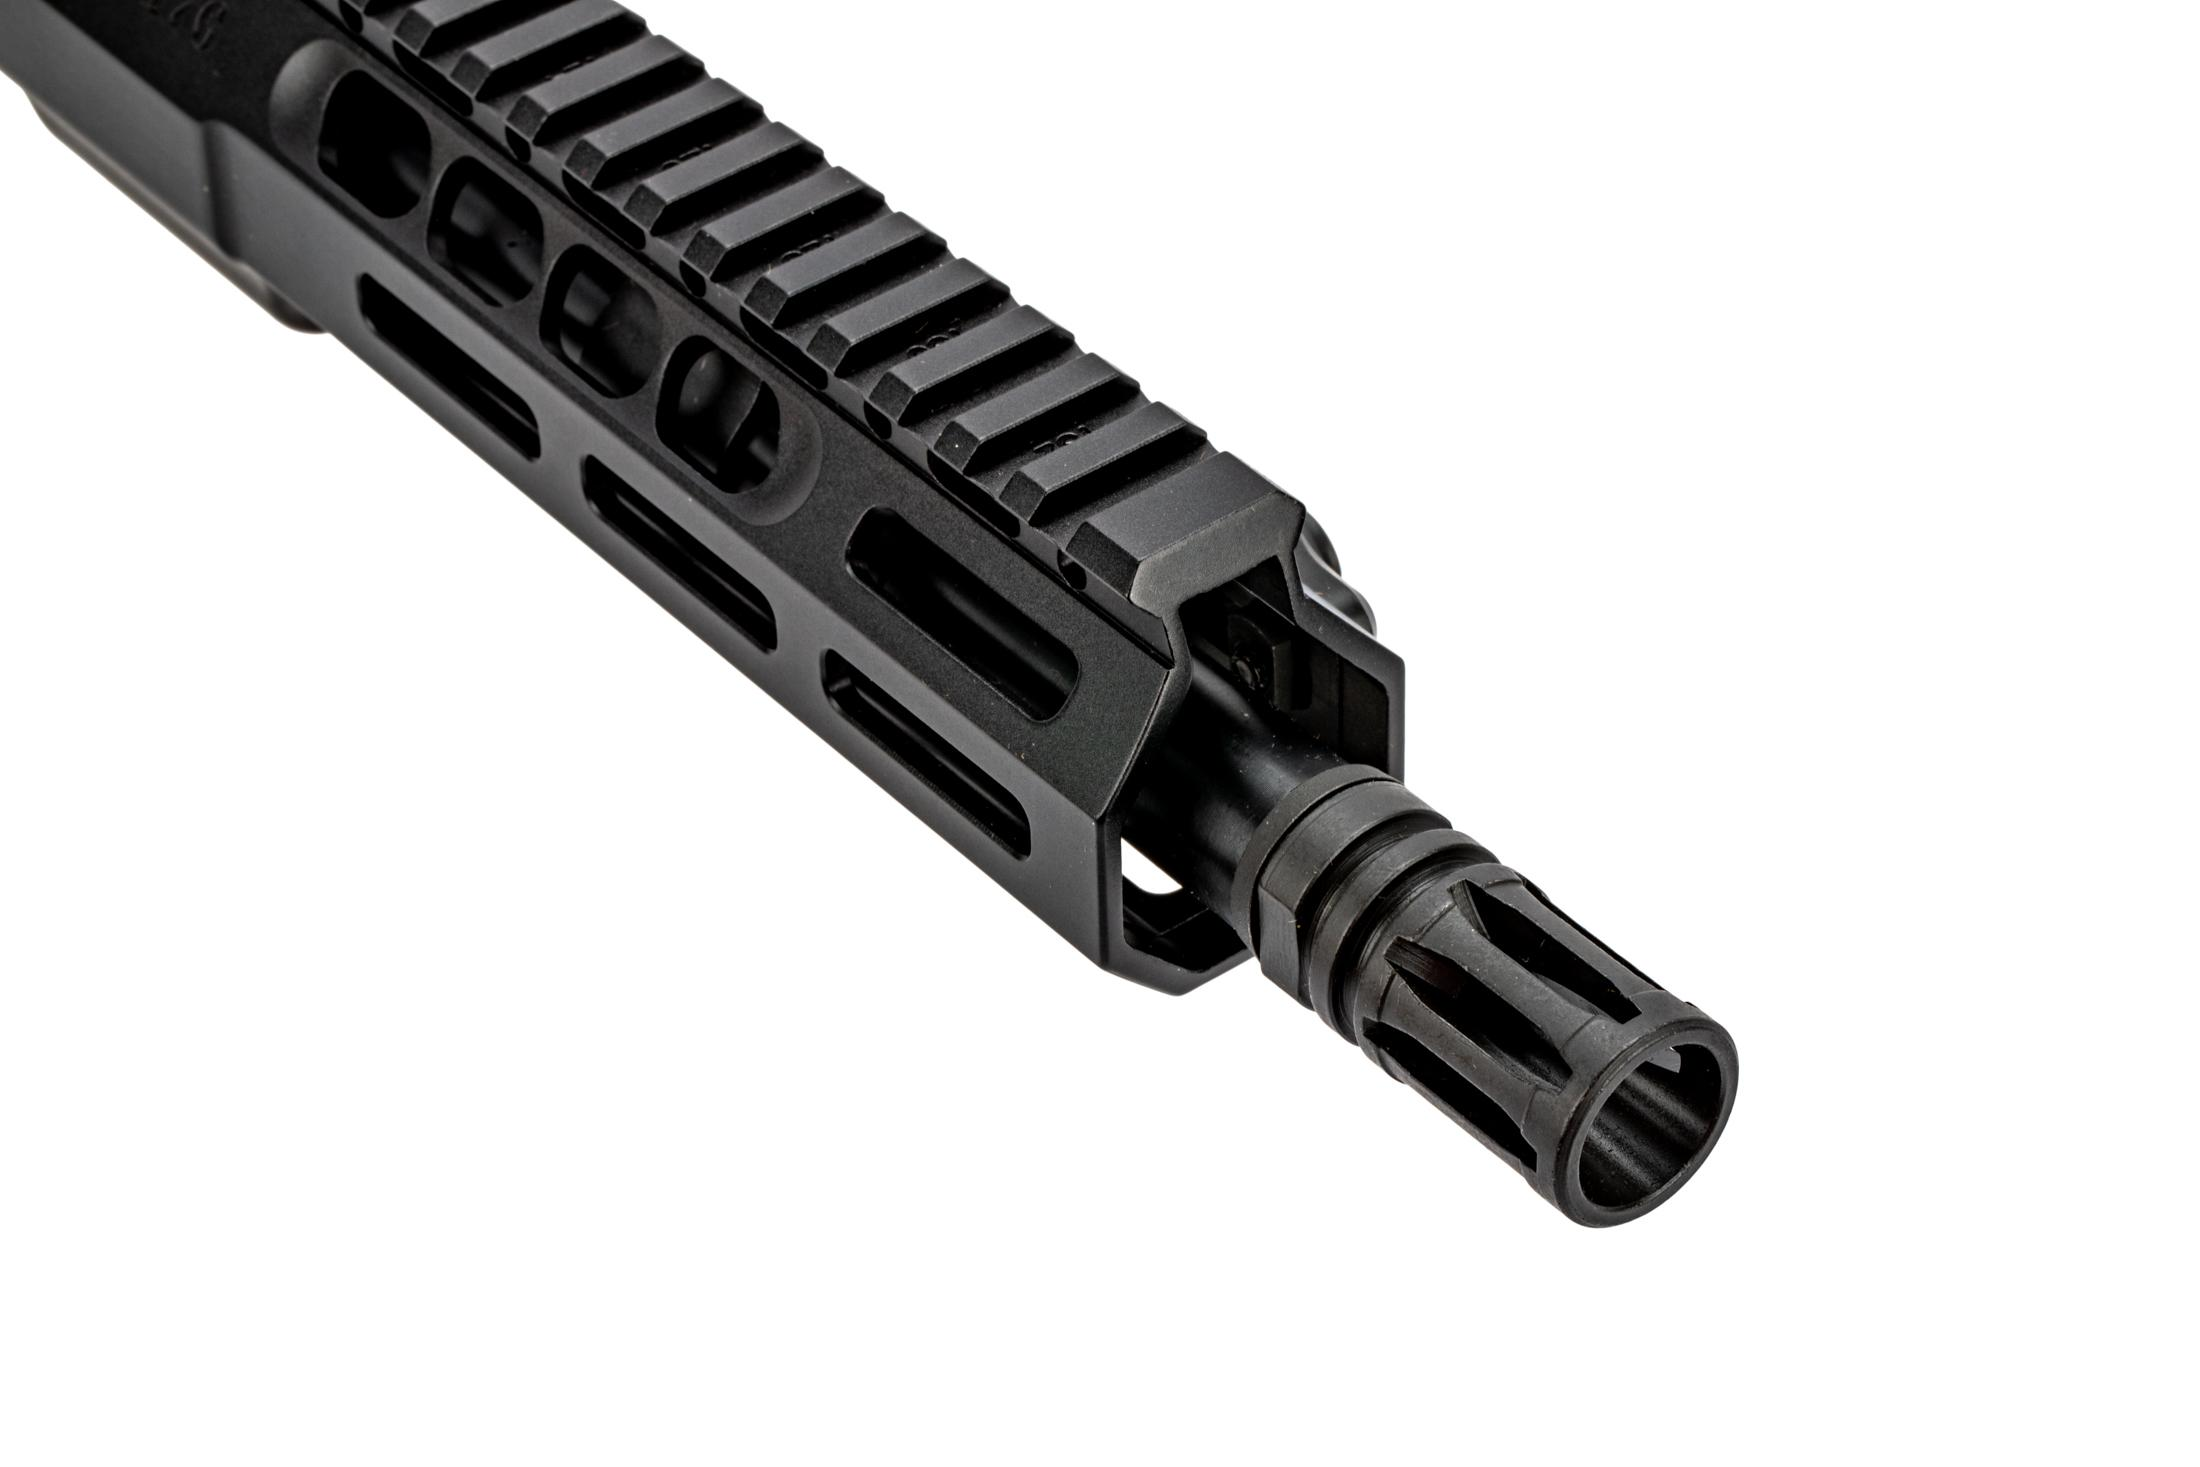 Sons of Liberty Gun Works M4-76 barreled 300 blk upper with 9 government contour barrel